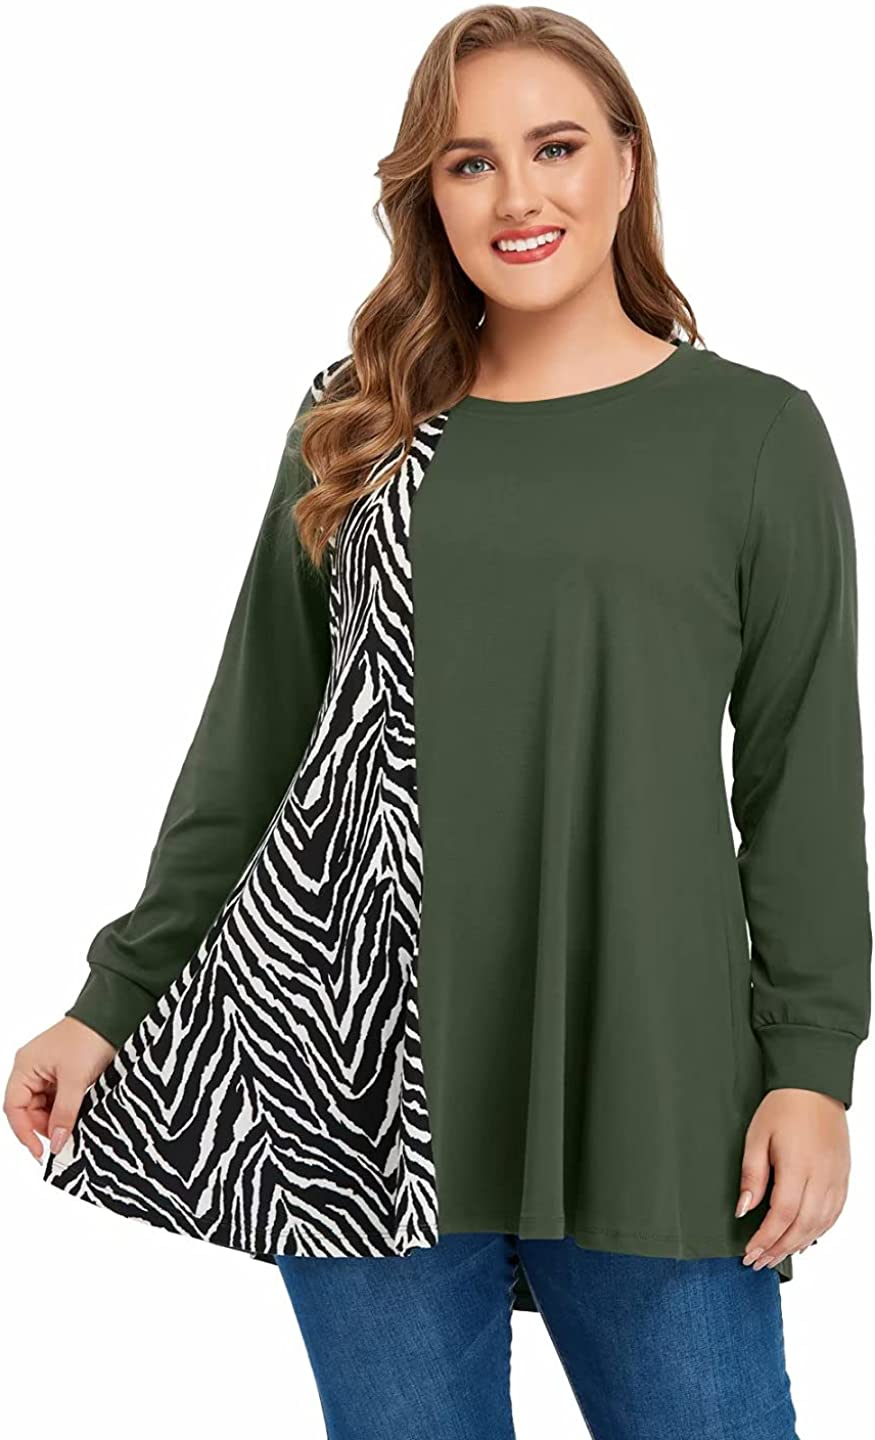 JollieLovin Plus Size Sweatshirts for Womens Long Sleeve Tops Animal Print Pullover Patchwork Tunic Lightweight Fall Clothes